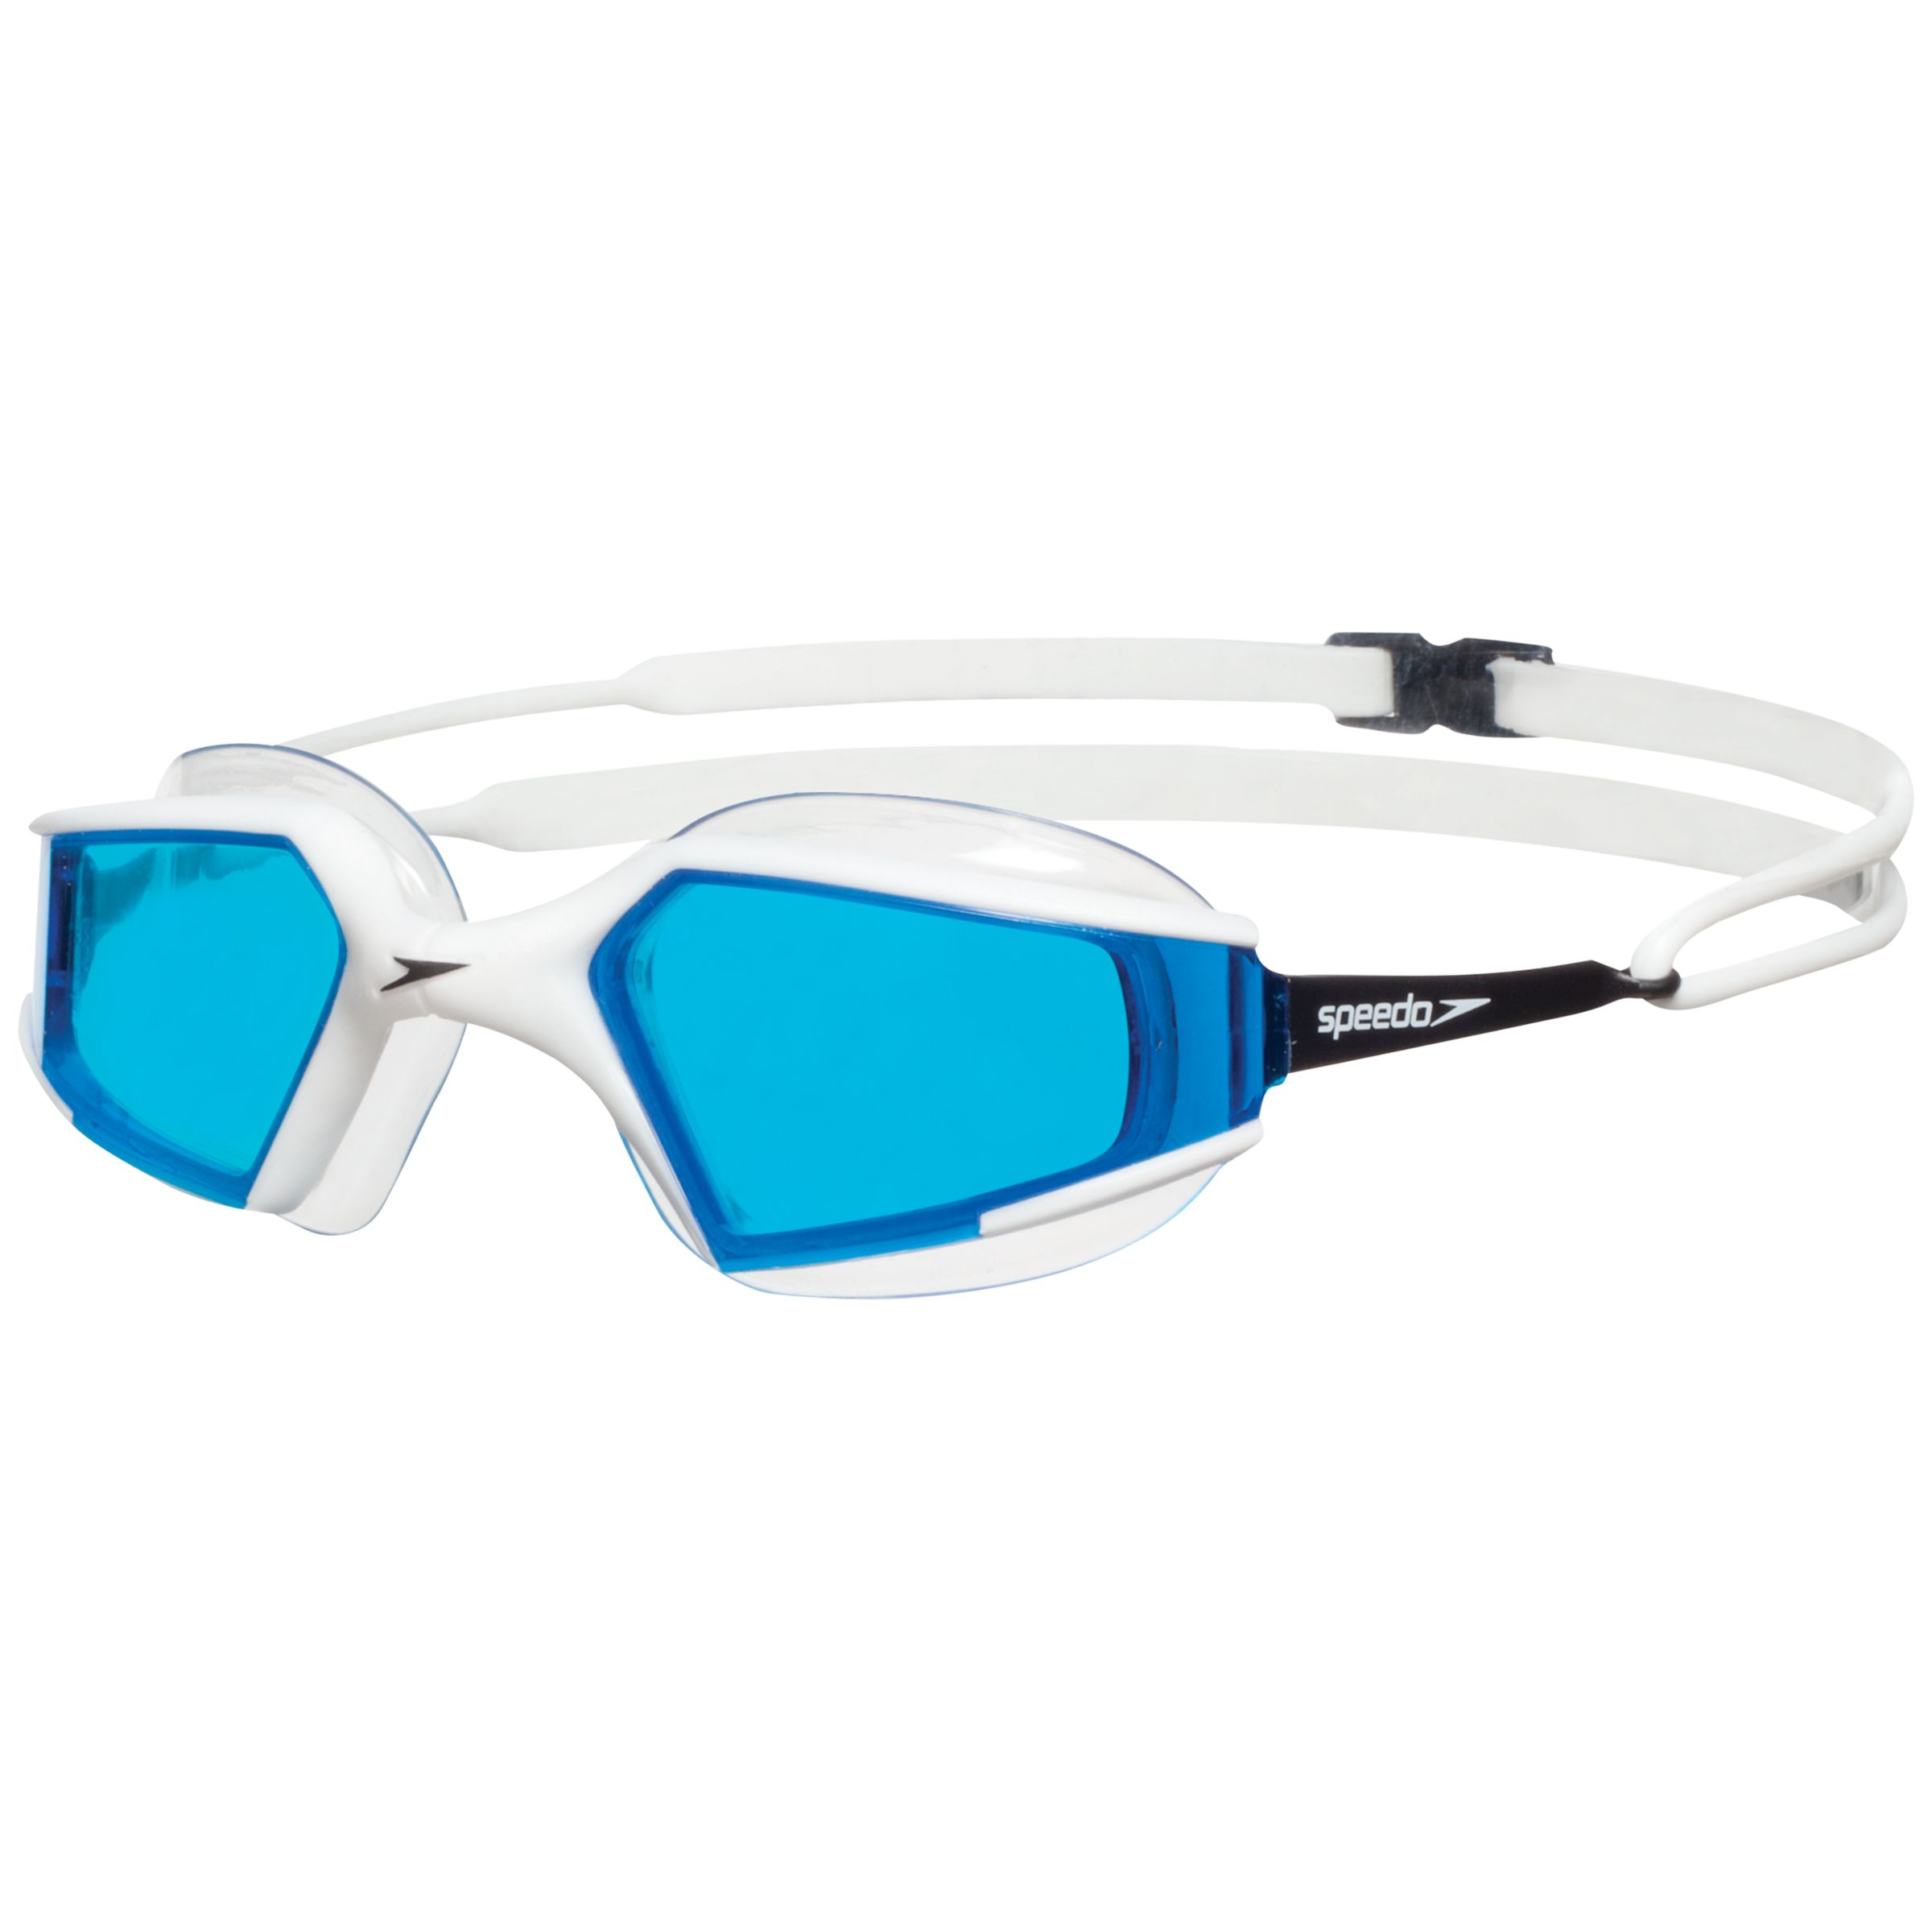 Speedo Aquapulse Max Swimming Goggles, White/Black/Blue